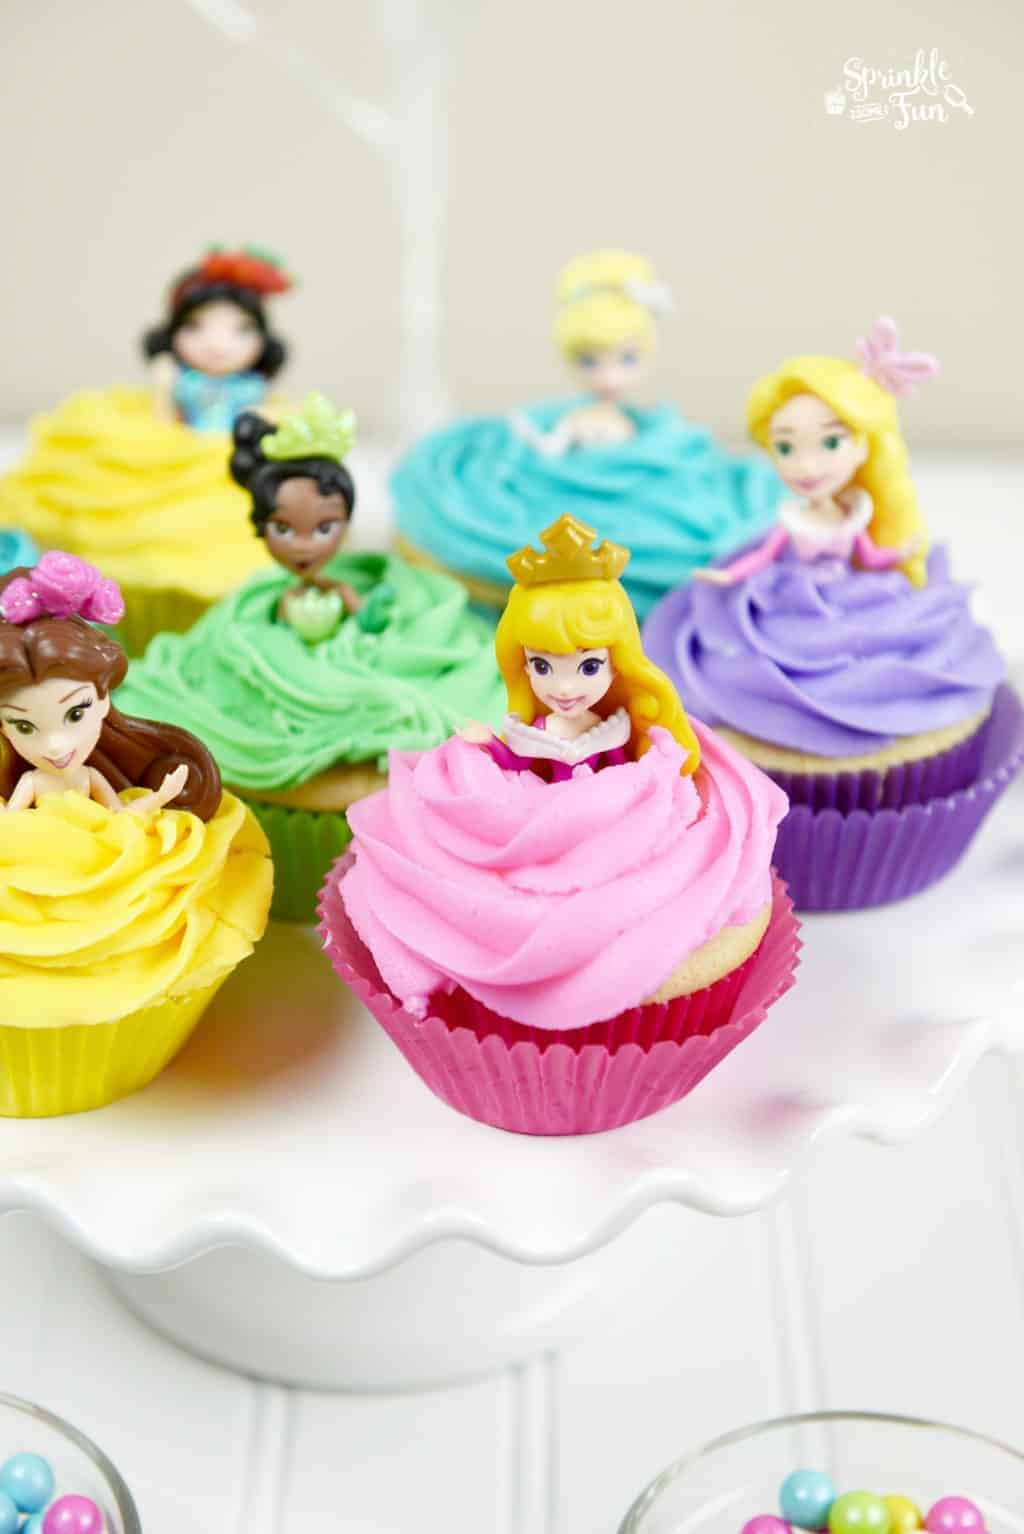 disney princess doll cupcakes   sprinkle some fun